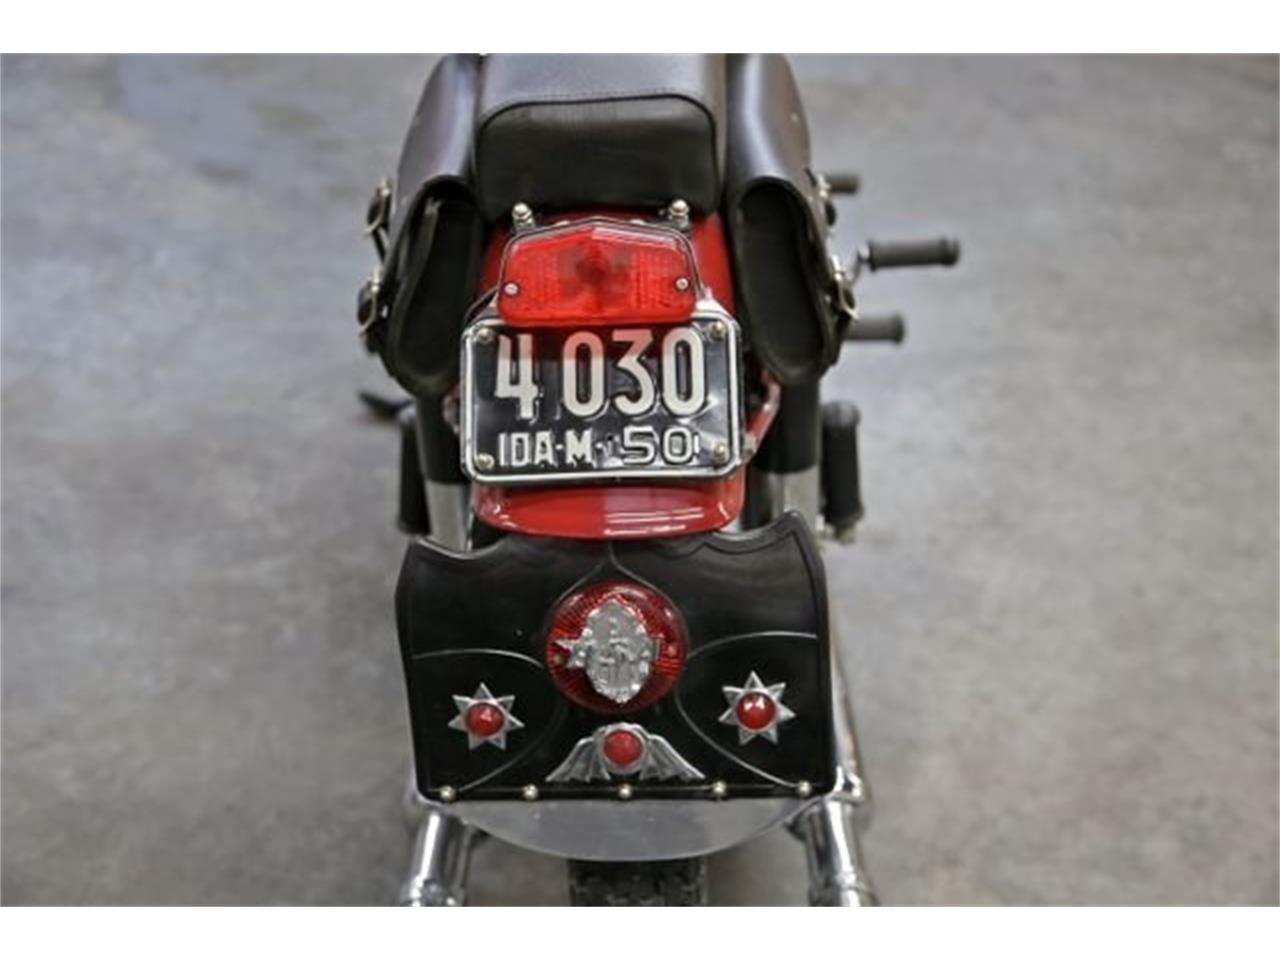 Large Picture of 1950 BSA Motorcycle - $15,000.00 - NAM7